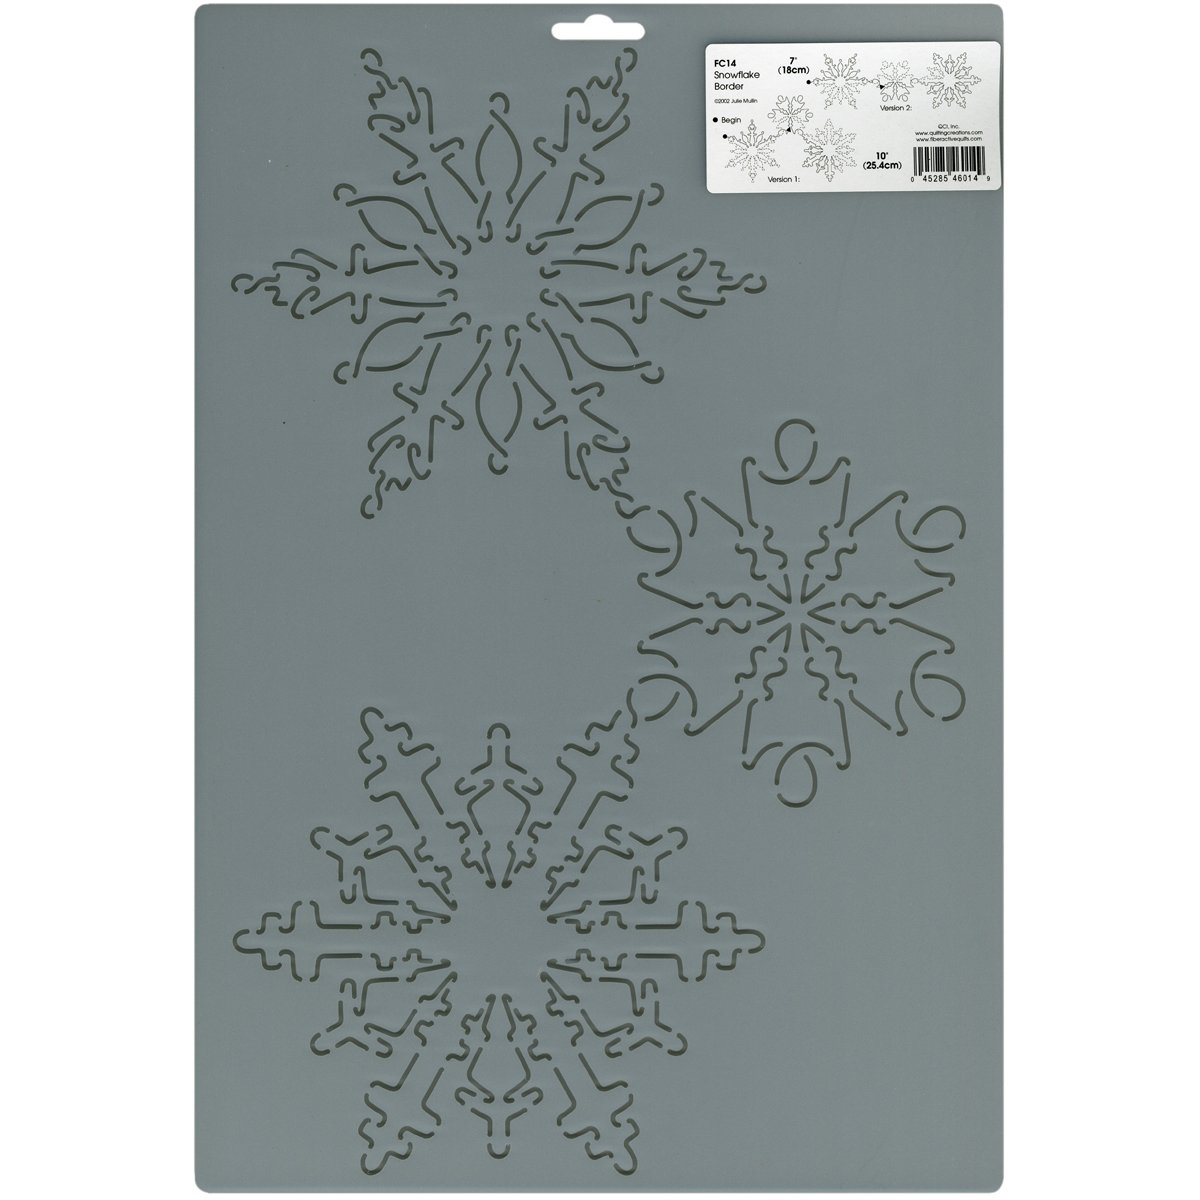 Sten Source FC-14 Stencils and Templates Quilt by Julie MullIn-7-Inch and 10-Inch Snowflakes 051216